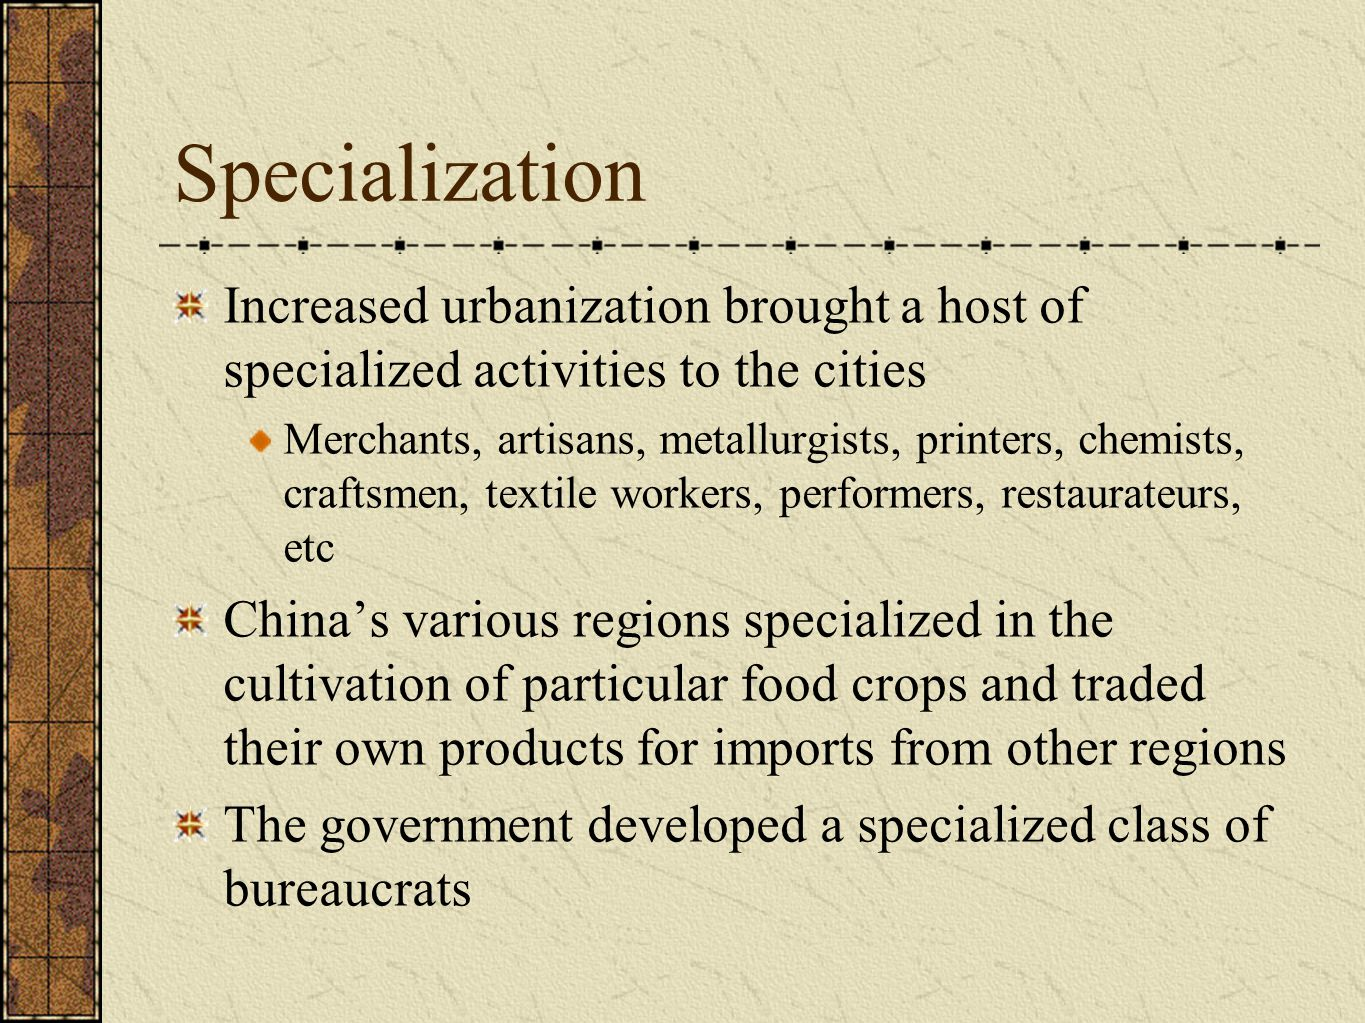 Specialization Increased urbanization brought a host of specialized activities to the cities Merchants, artisans, metallurgists, printers, chemists, craftsmen, textile workers, performers, restaurateurs, etc China's various regions specialized in the cultivation of particular food crops and traded their own products for imports from other regions The government developed a specialized class of bureaucrats